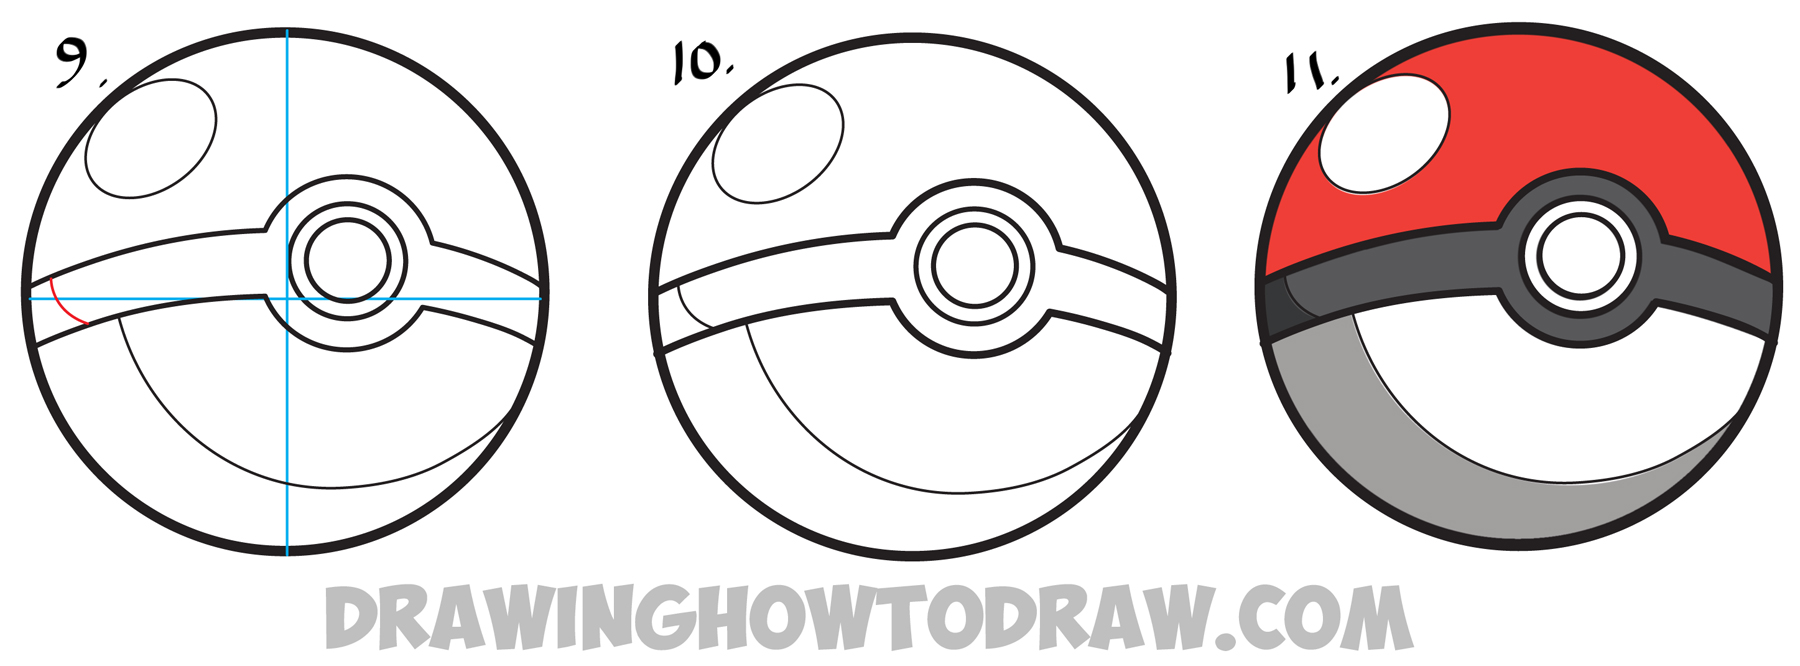 Uncategorized Pokemon That Are Easy To Draw how to draw a pokeball from pokemon easy step by drawing learn simple steps lesson